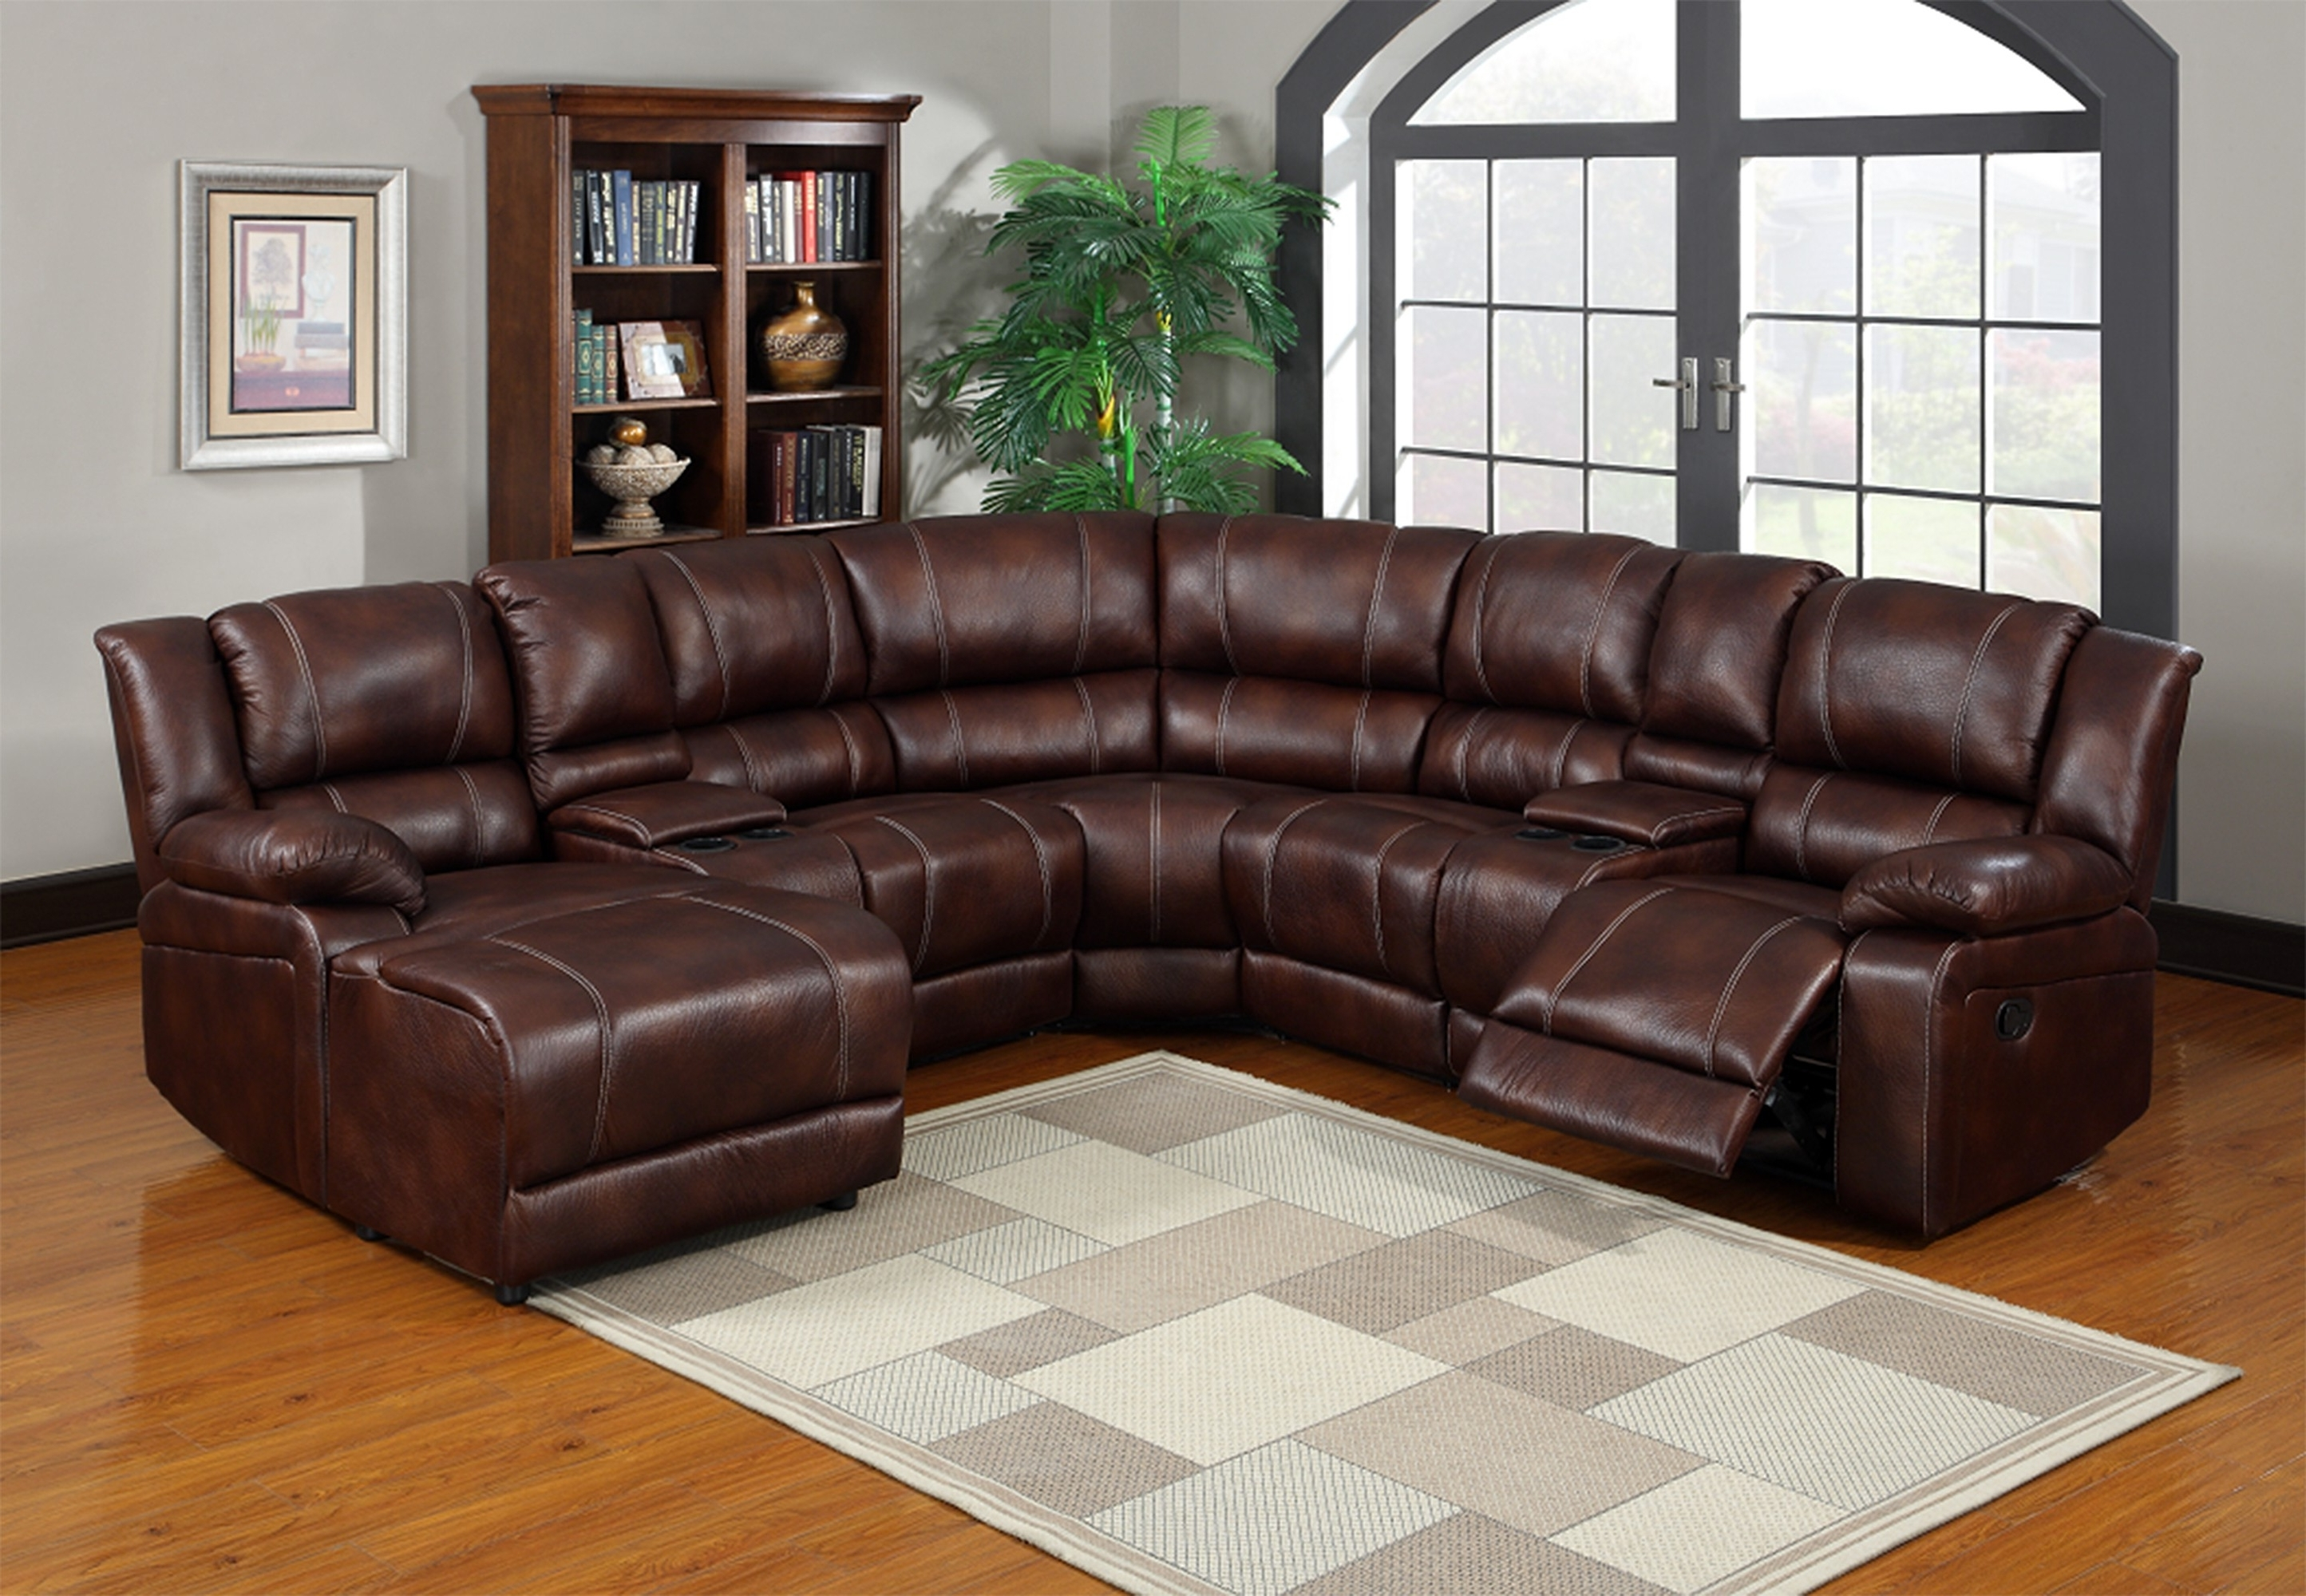 Latest Leather Motion Sectional Sofa – Home And Textiles Regarding Motion Sectional Sofas (View 6 of 20)